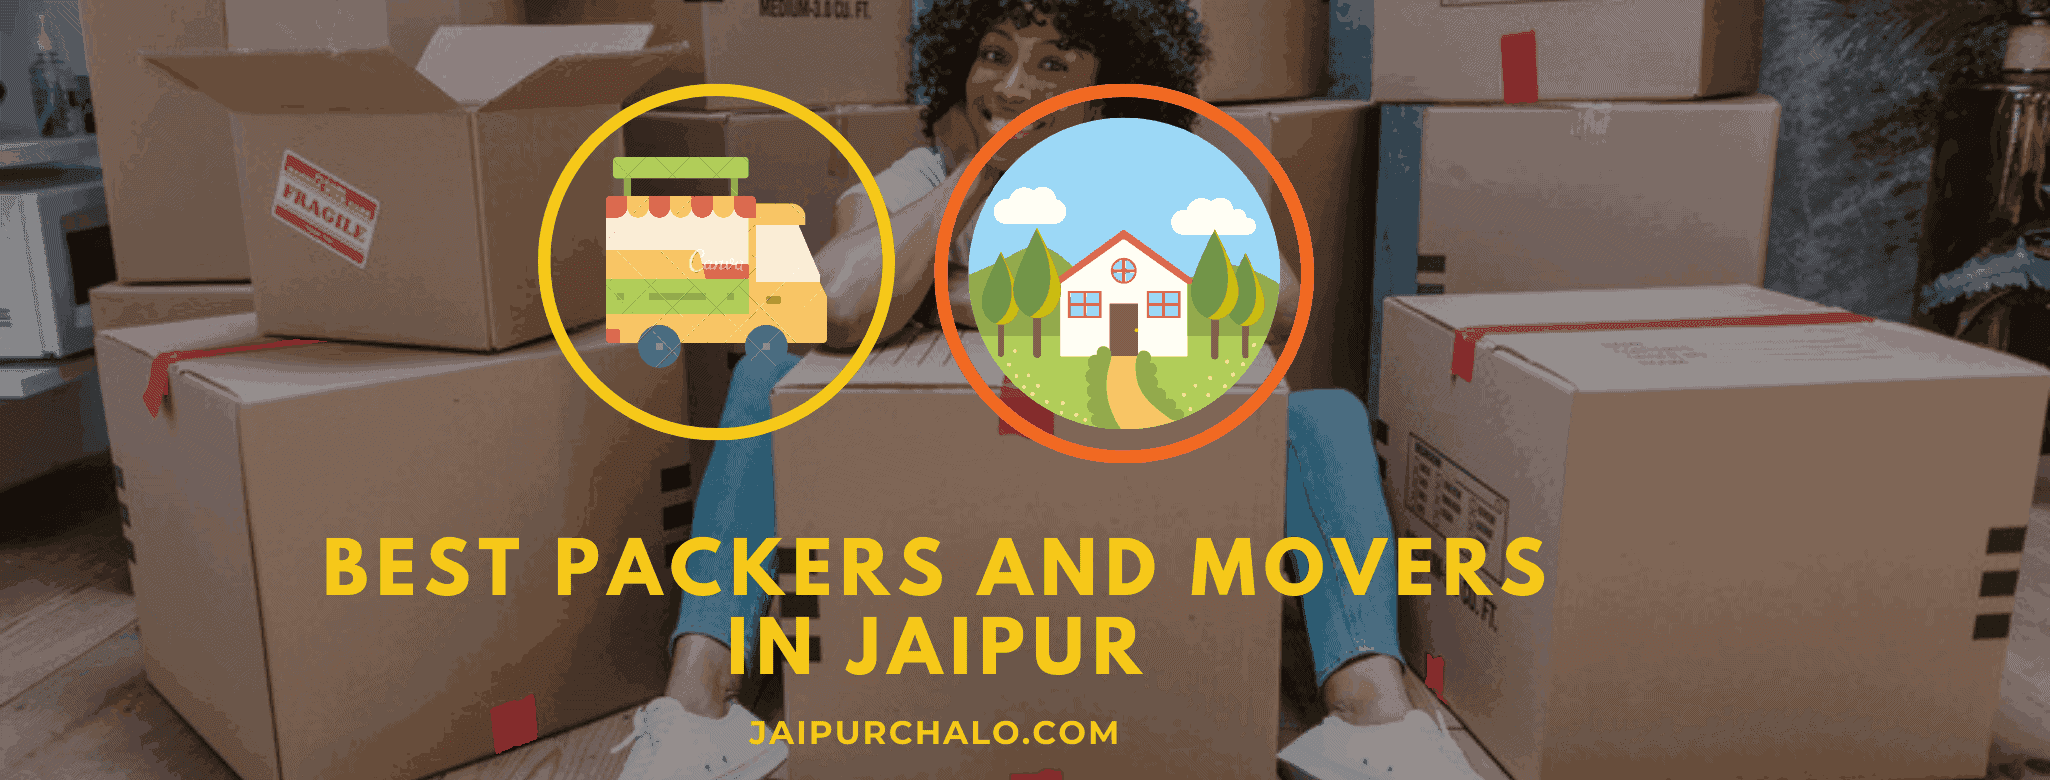 best Packers and movers in jaipur